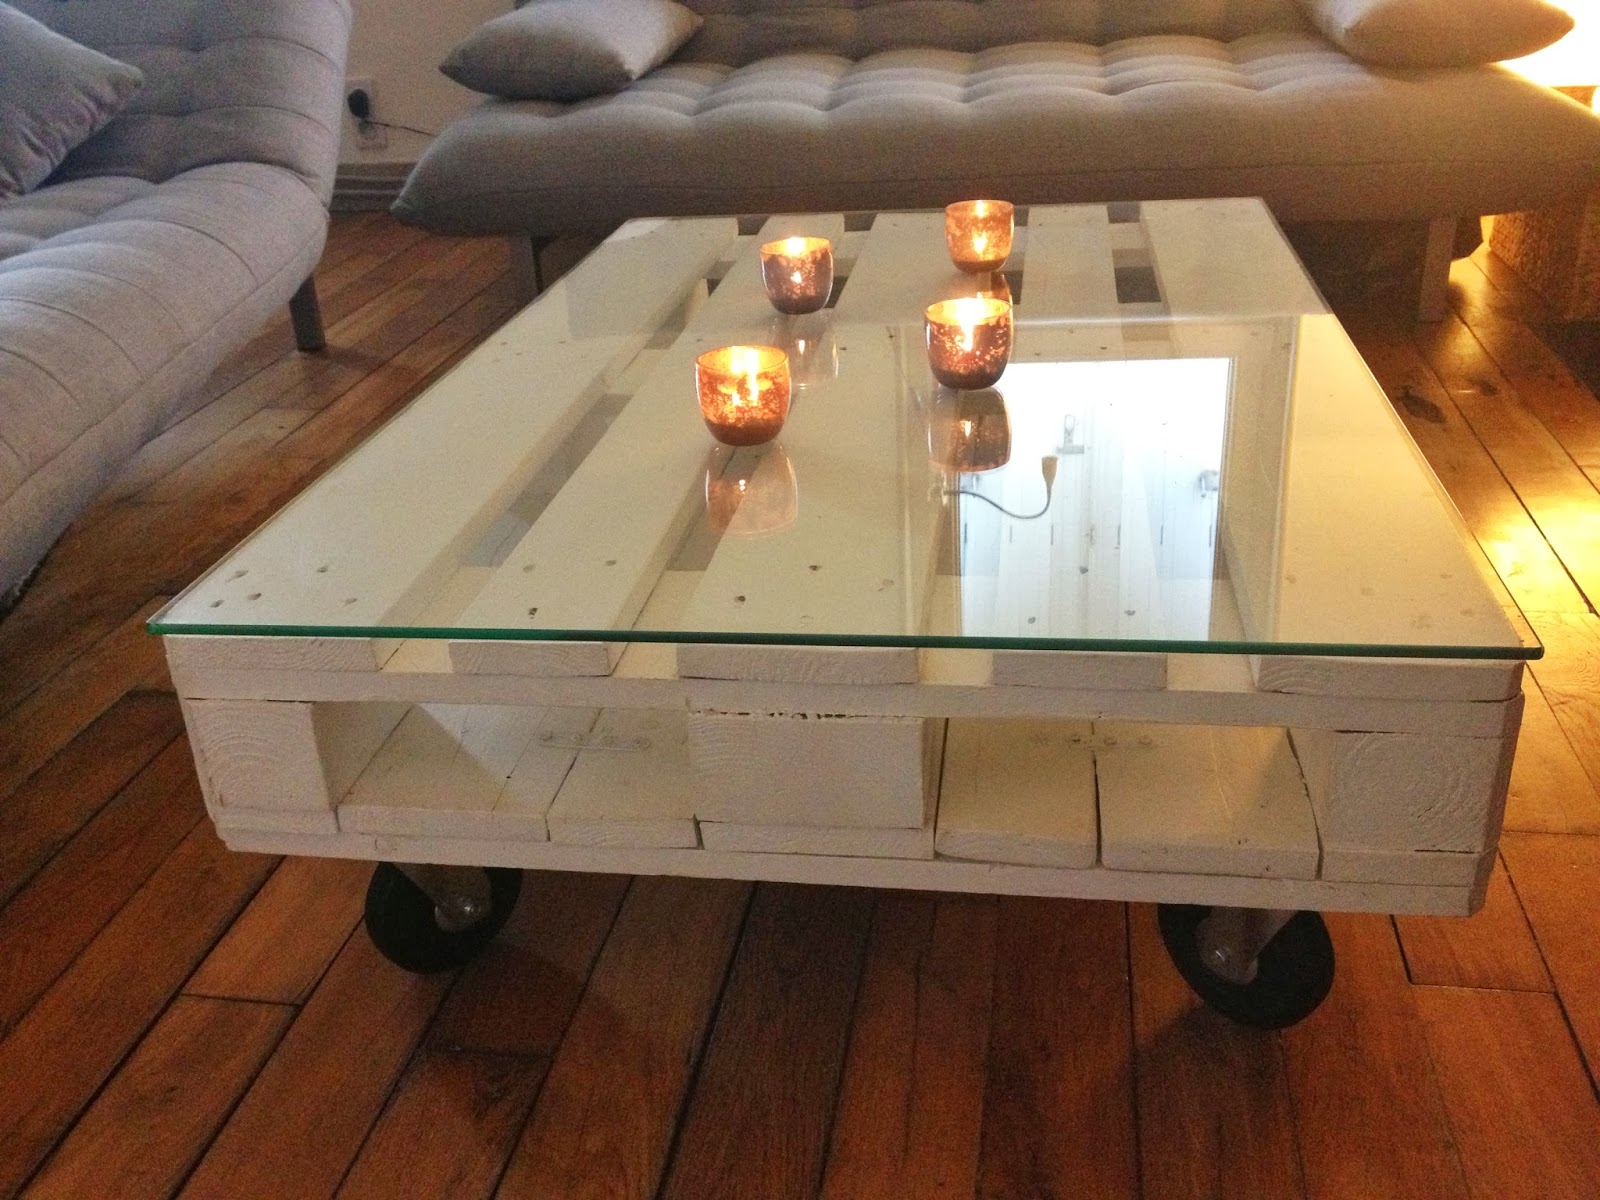 Diy une table basse en palette la clamartoise - Table basse palette design ...